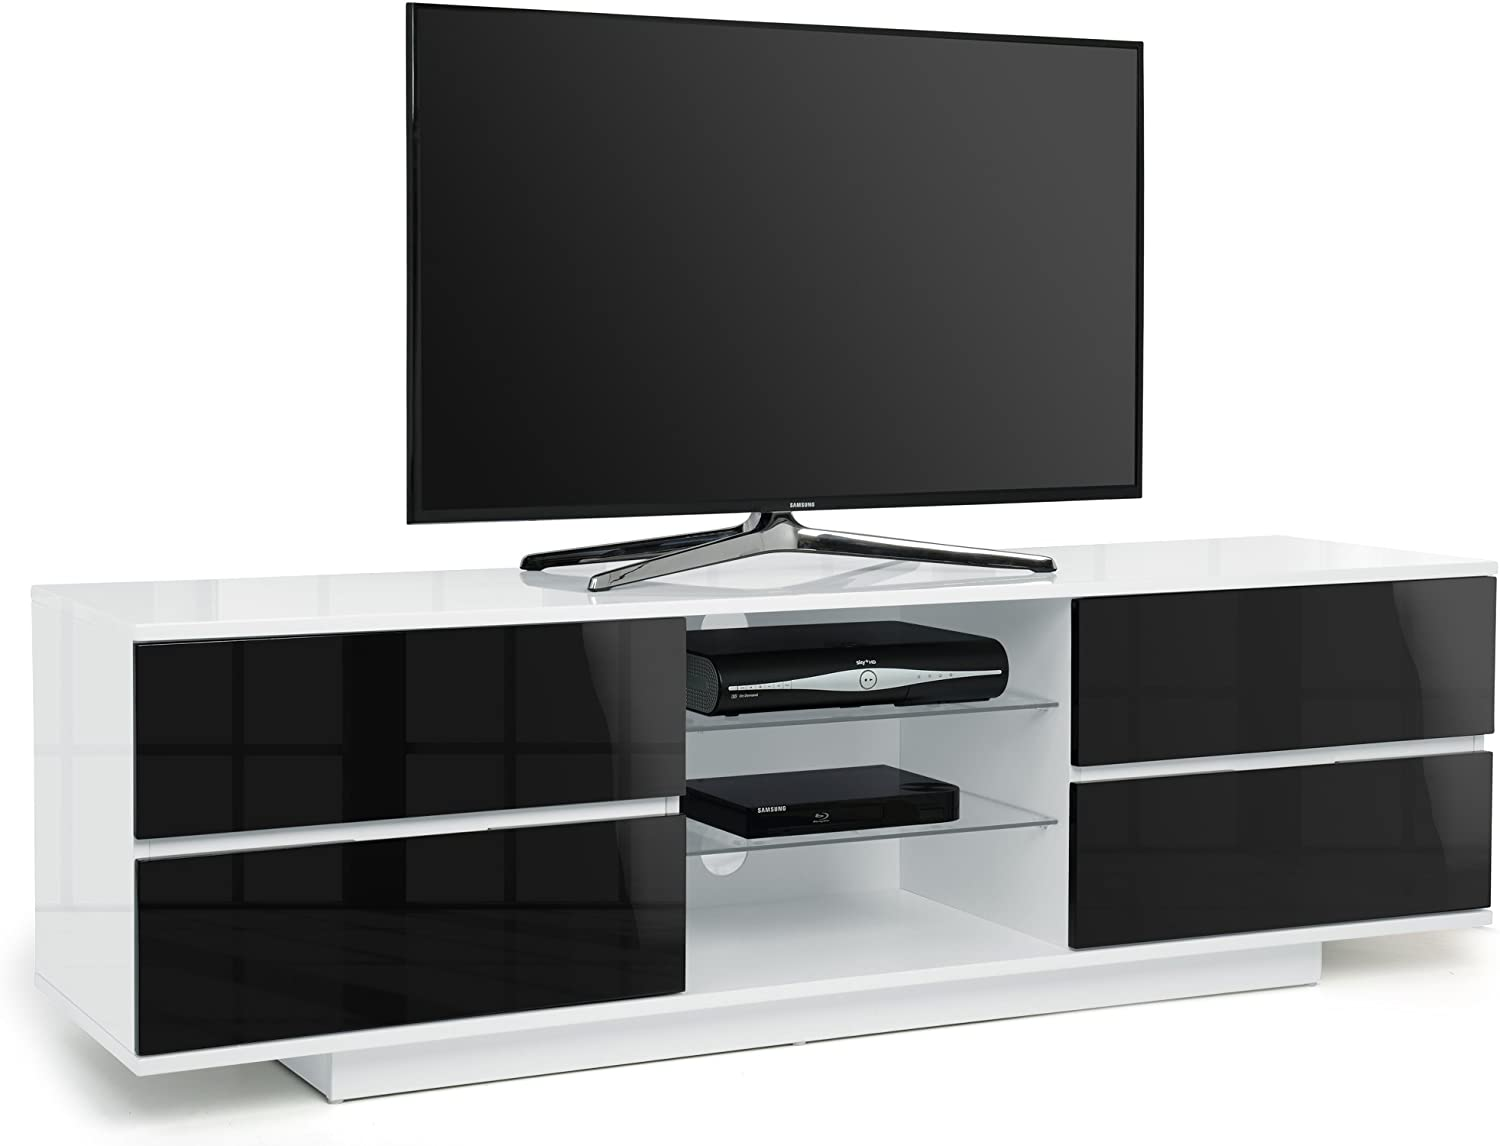 Centurion Supports Avitus High Gloss White with 4-Gloss Black Drawers /& 3-Shelf 32-65 LED//LCD//Plasma Cabinet TV Stand